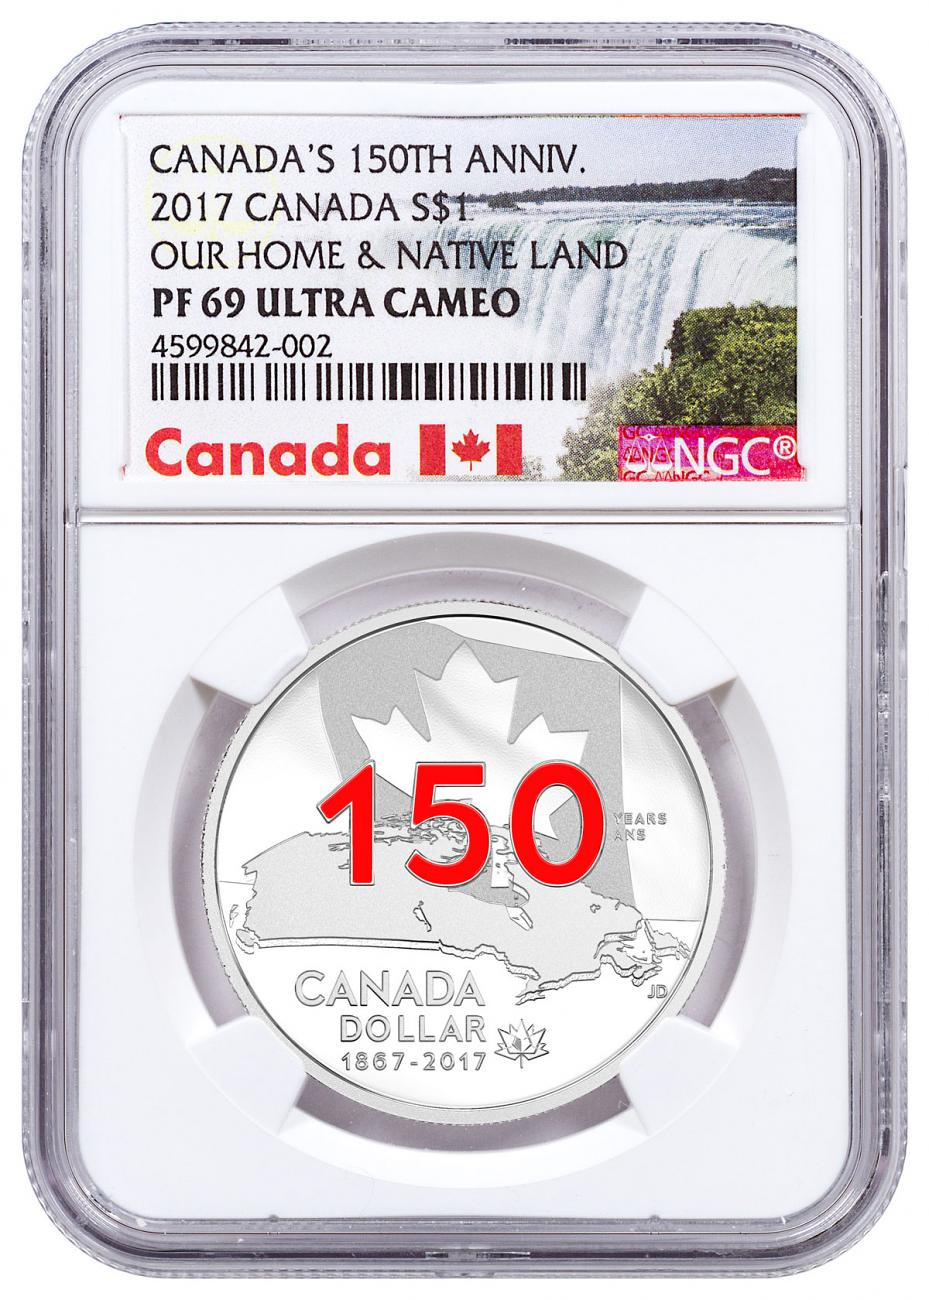 2017 Canada Celebrating Canada's 150th - Our Home and Native Land 3/4 oz Silver Enameled Proof $1 Coin NGC PF69 UC Exclusive Canada Label